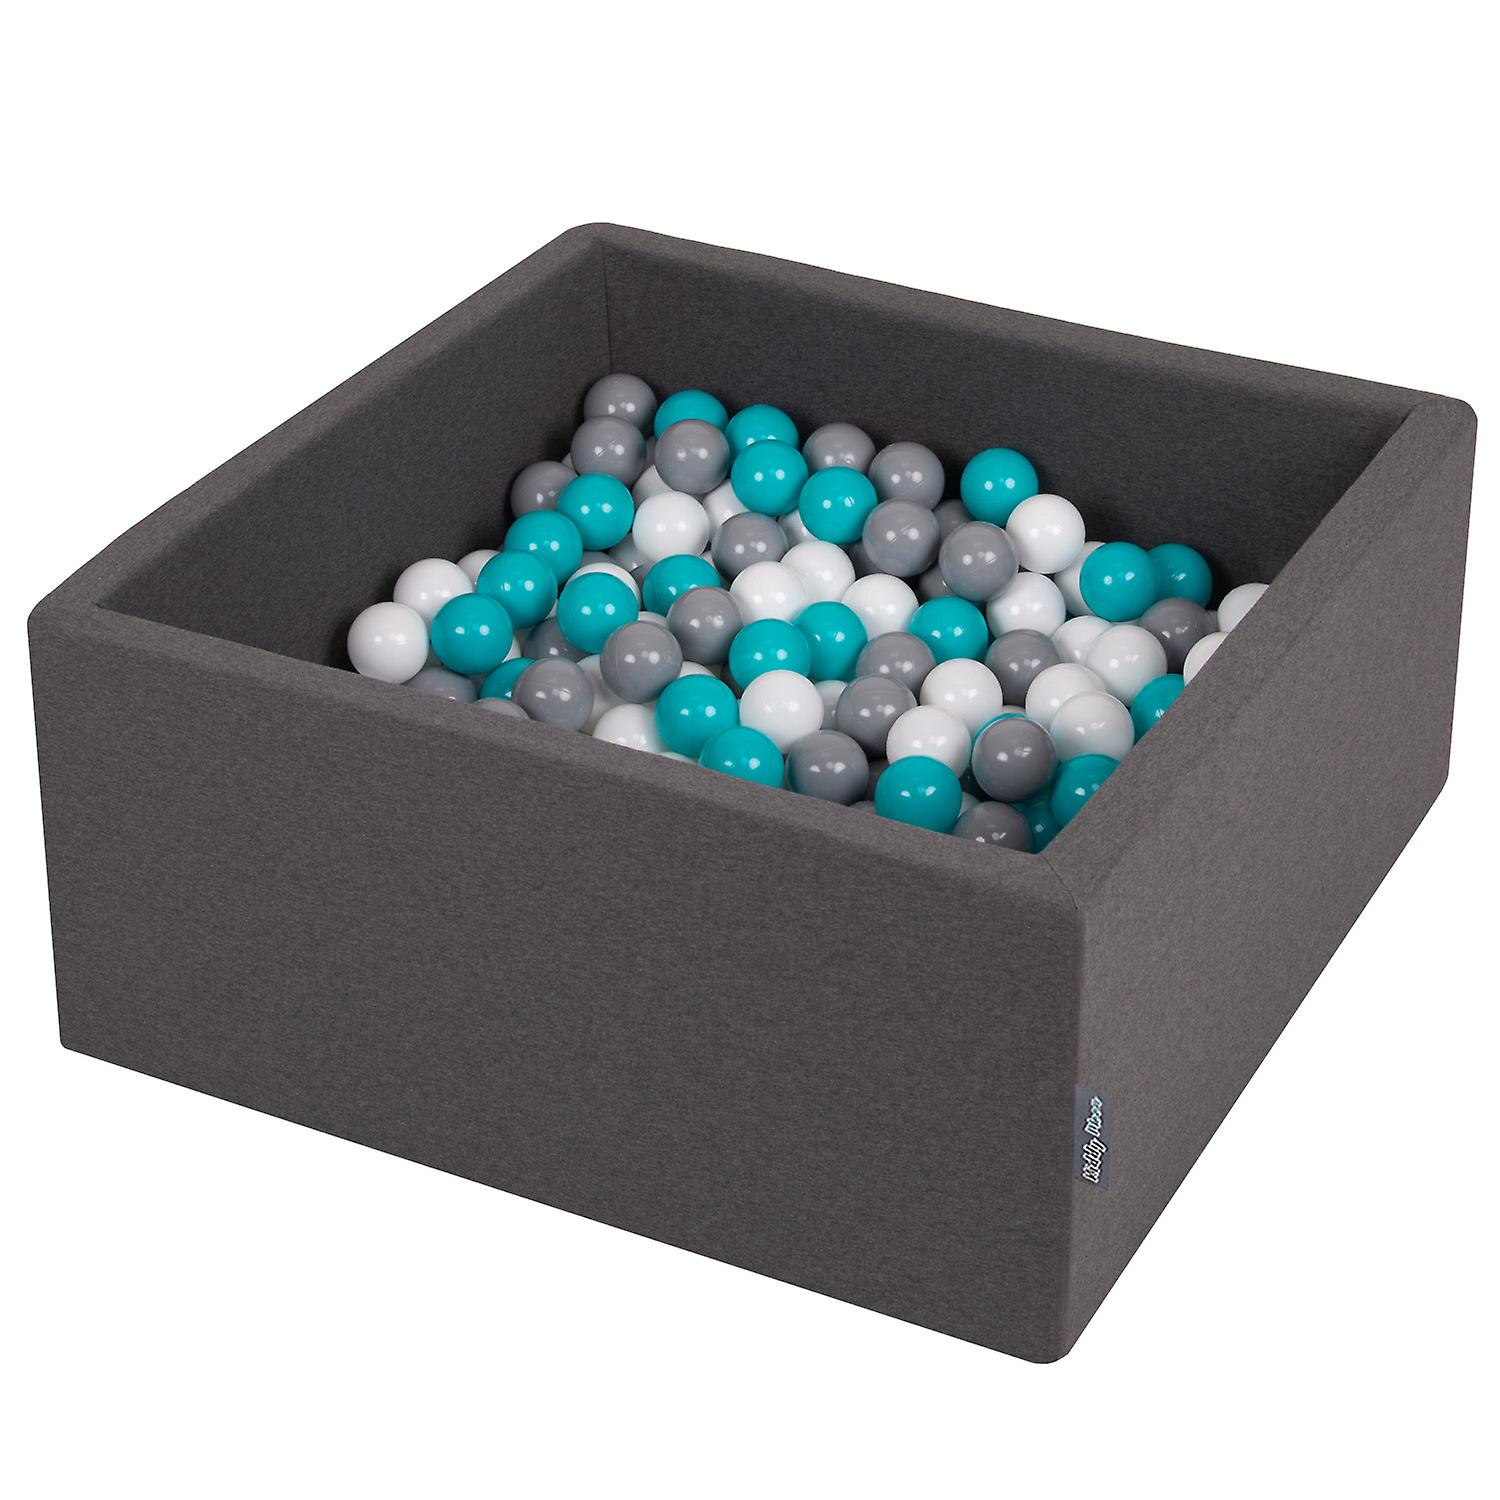 Kiddymoon Baby Foam Ball Pit With Balls ∅ 7Cm / 2.75In Square Made In EU